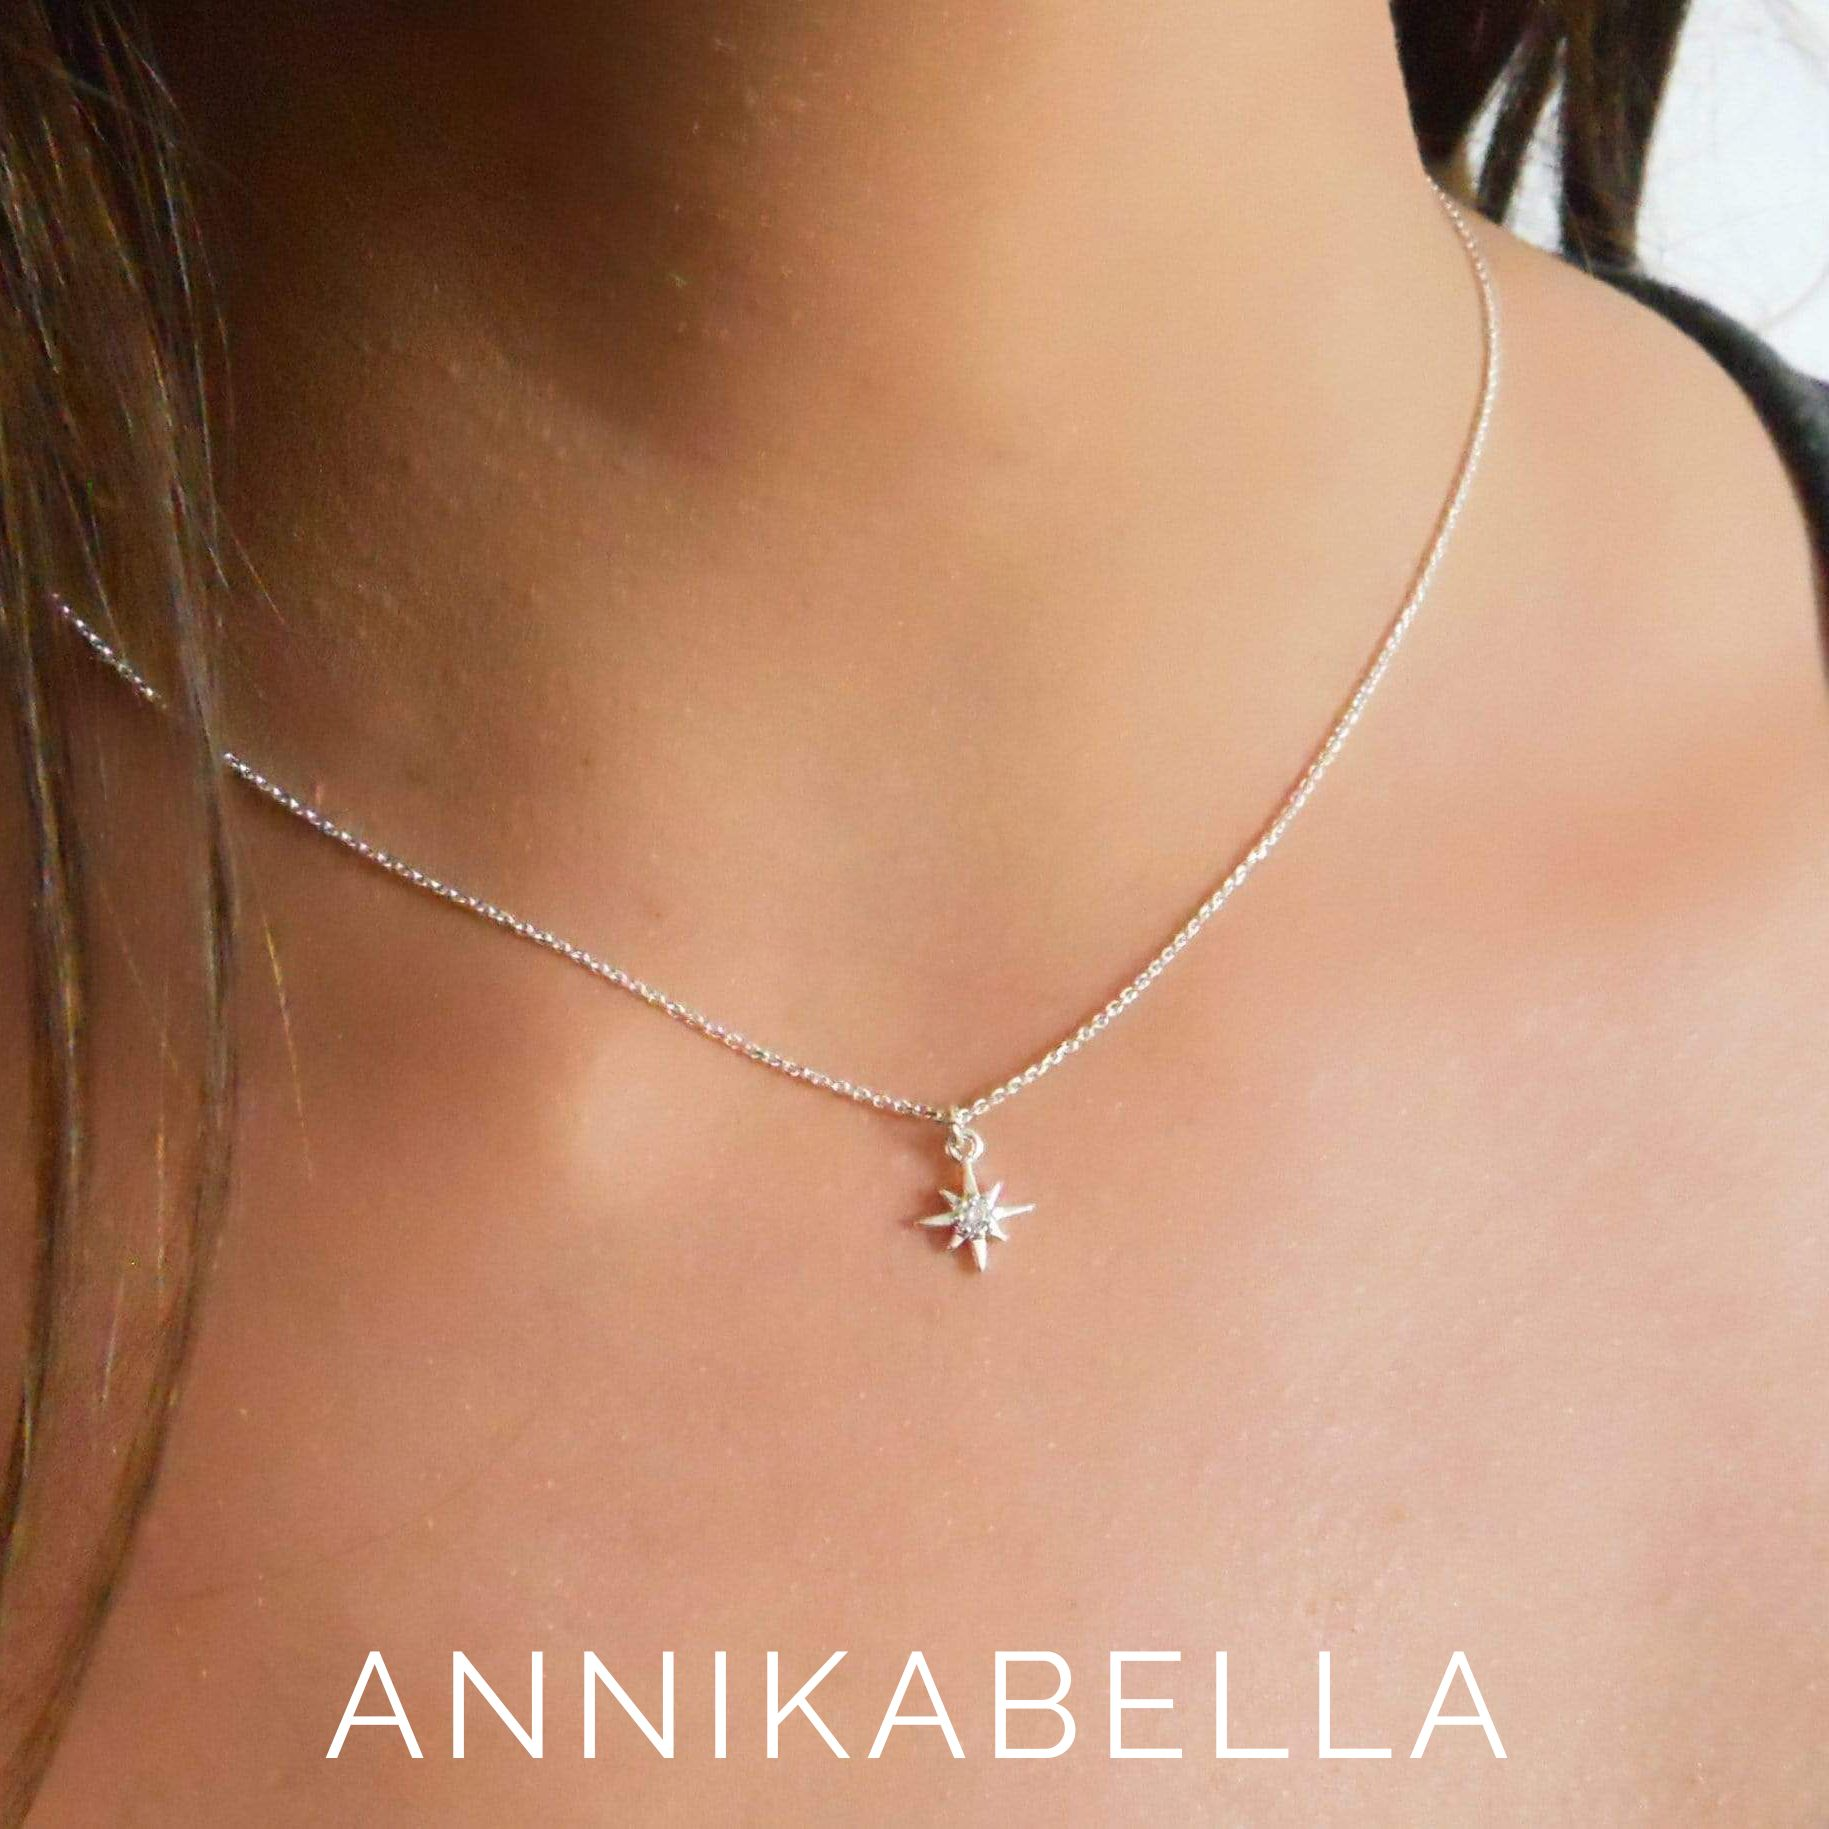 Satellite Chain Necklace with Natural Turquoise Beads Turquoise Bar Necklace for Women Sterling Silver Choker Handmade Jewelry by Annikabella